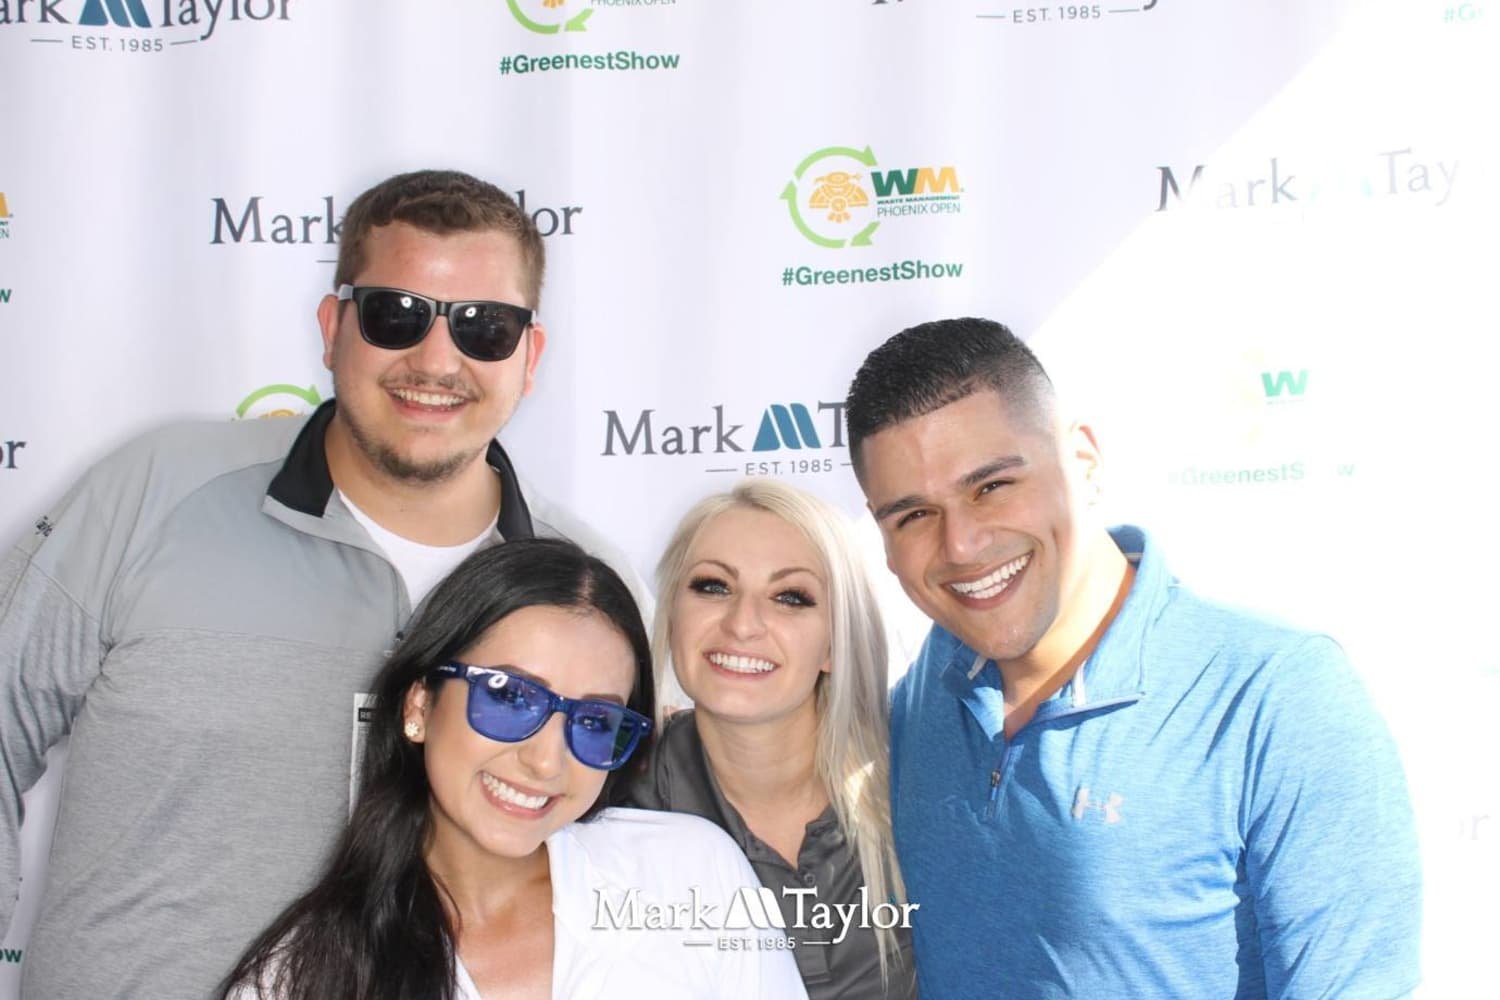 Mark-Taylor employees taking advantage of a photo opportunity at a charity event